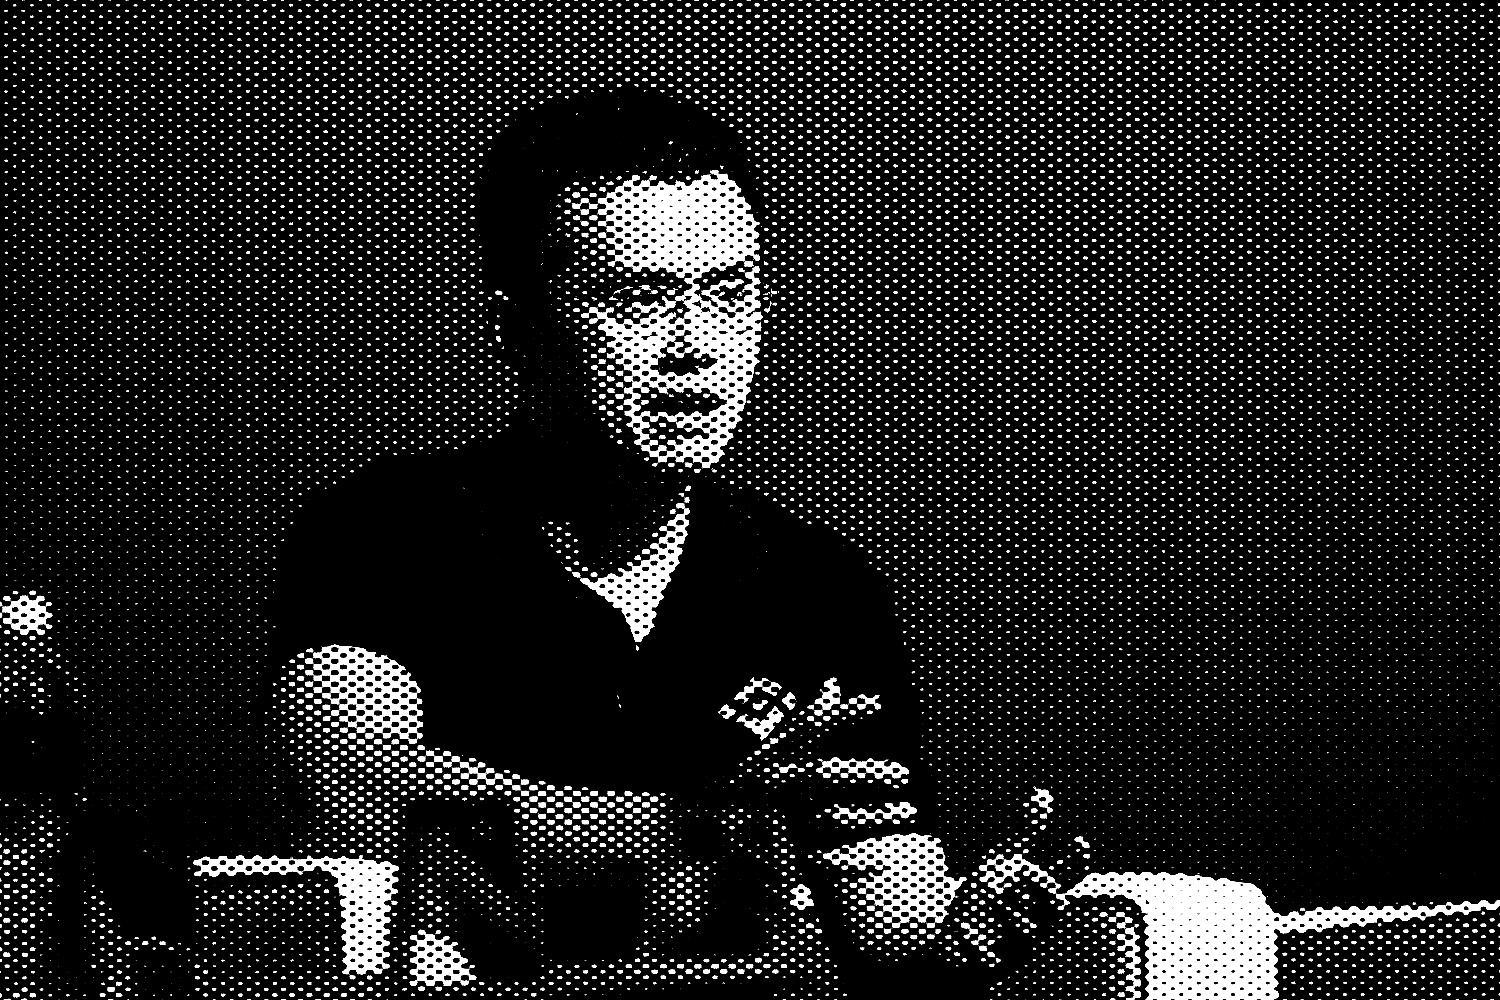 State of Crypto: Binance Is Firmly in the Regulatory Crosshairs